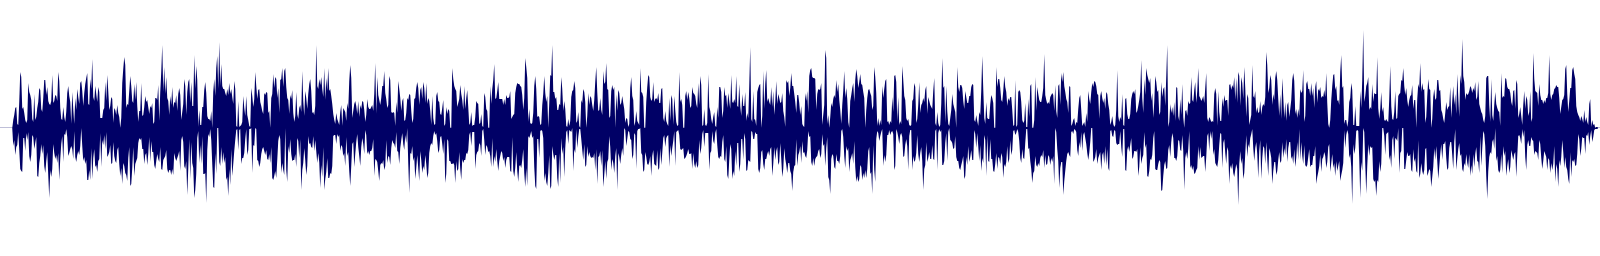 waveform of track #90583